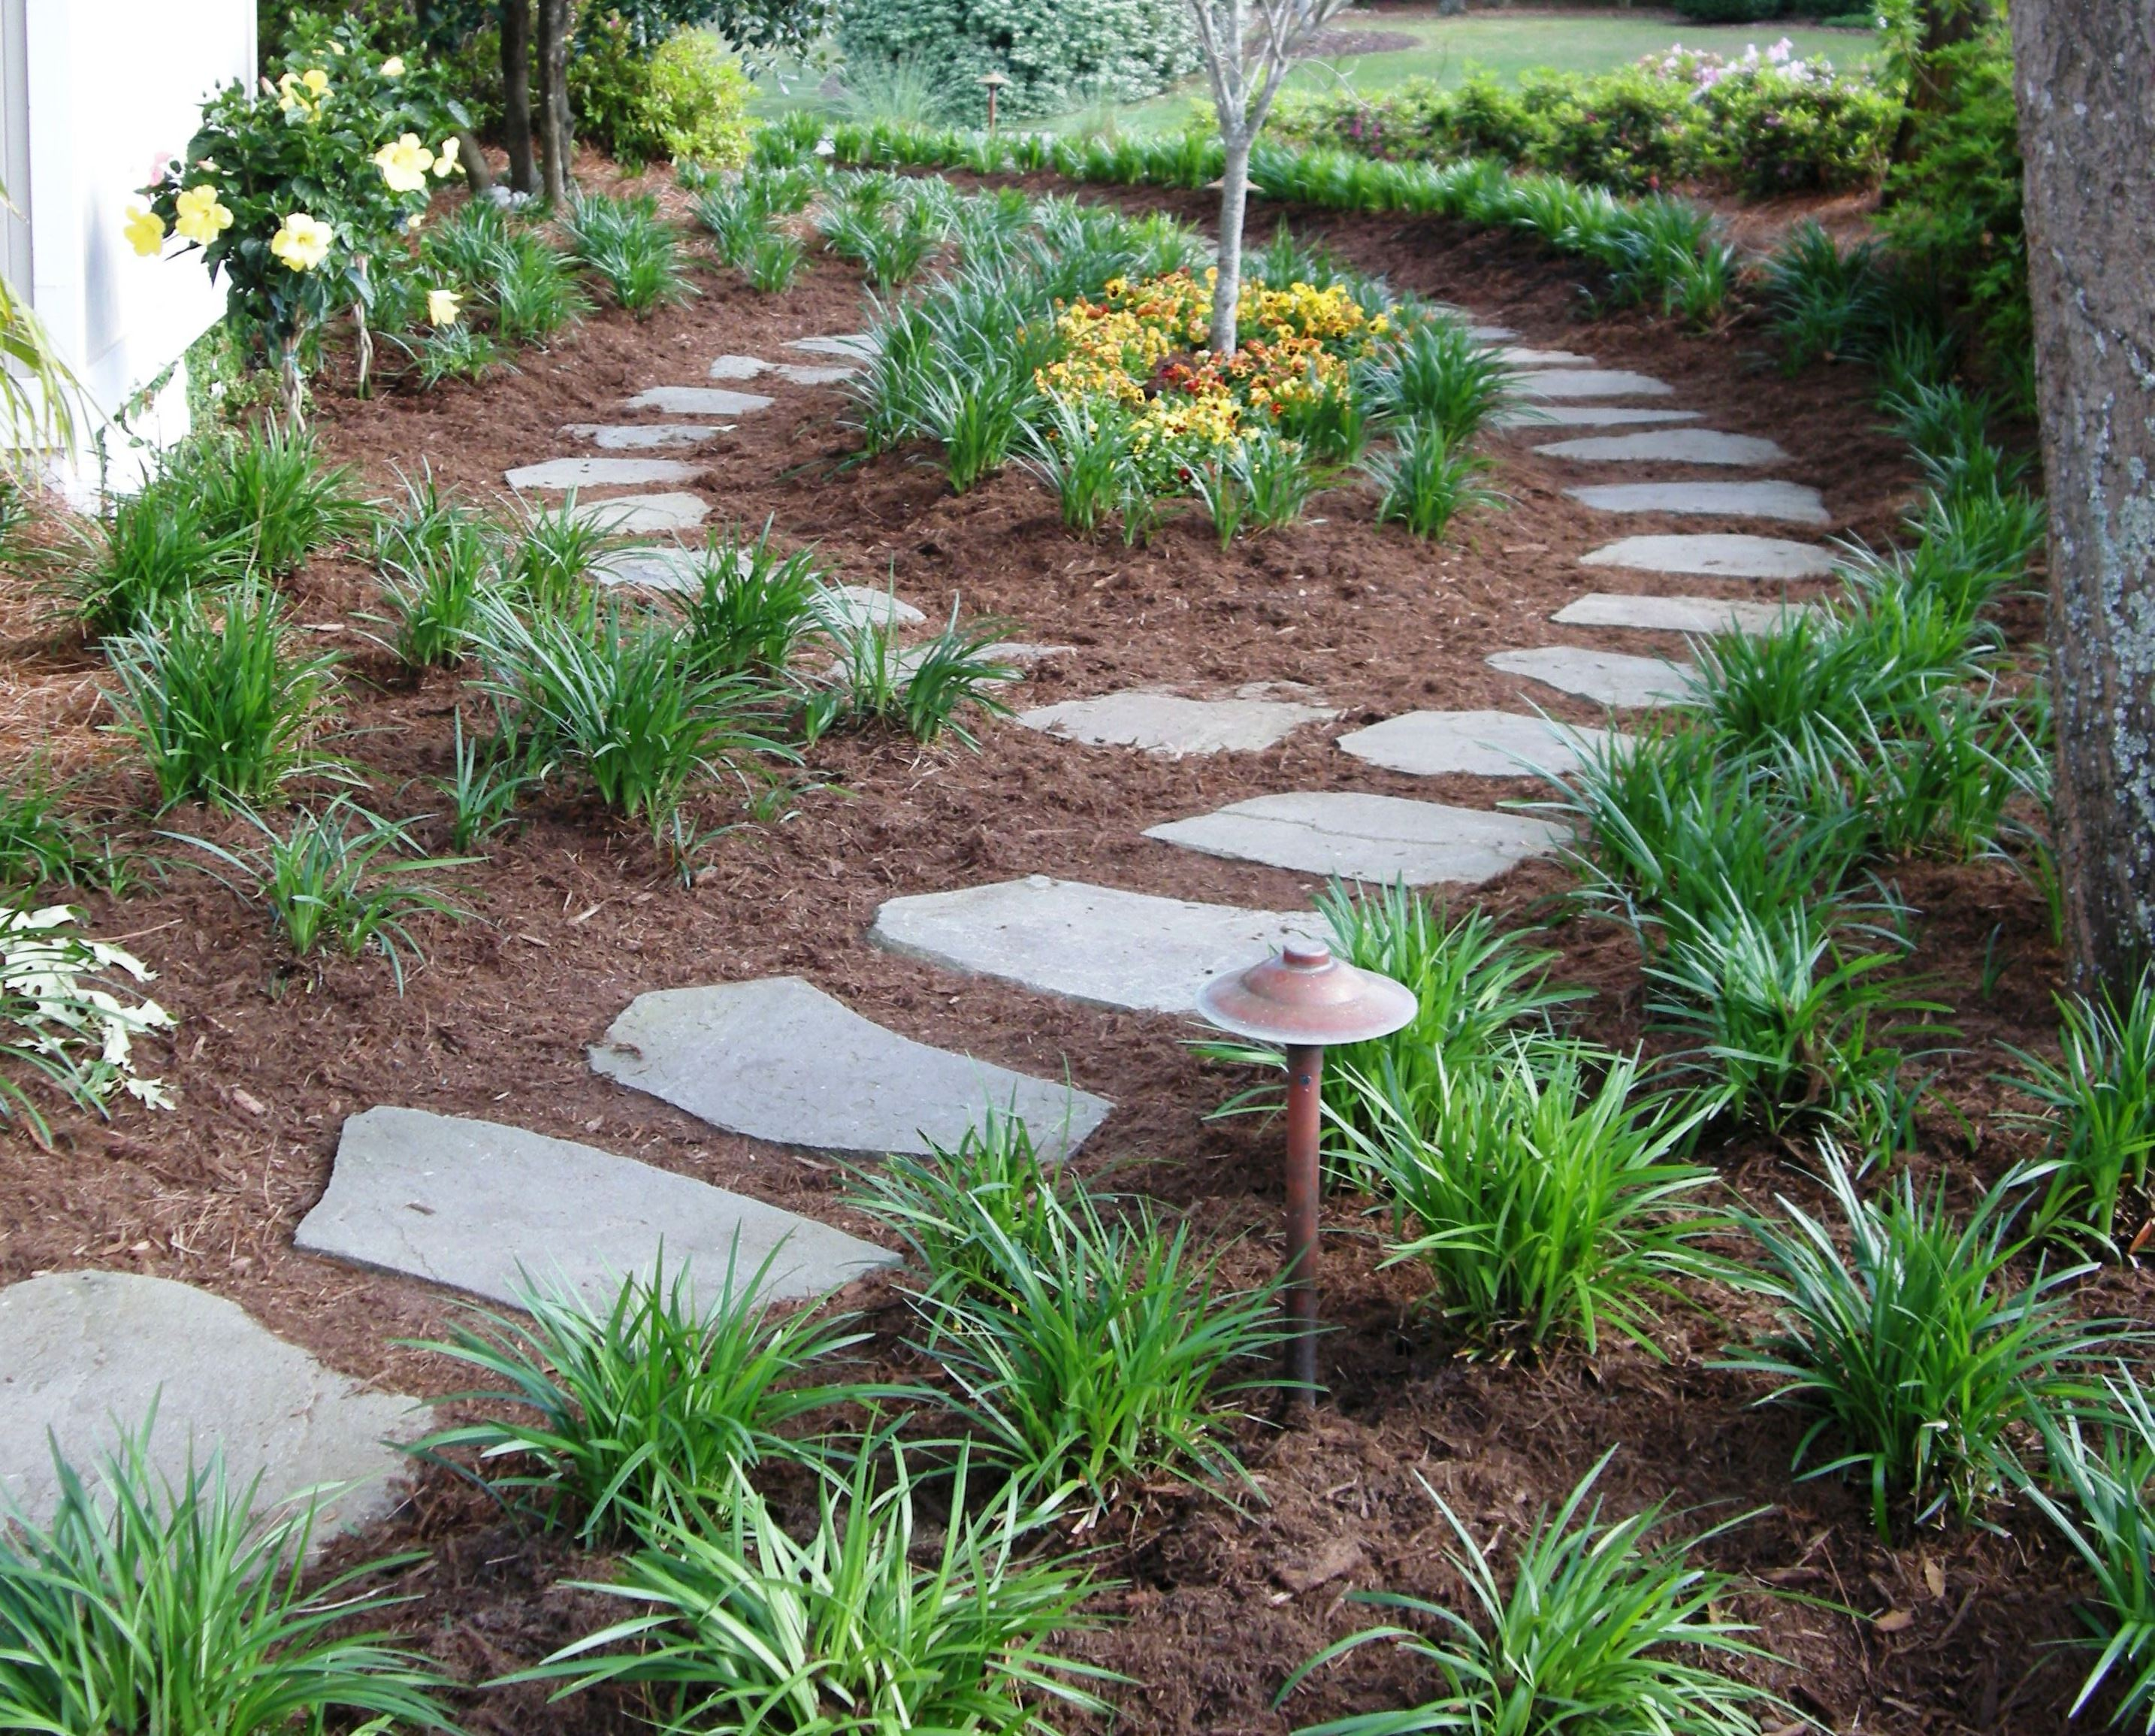 stepping stone garden pathway nestled in fresh mulch with flowers and foliage